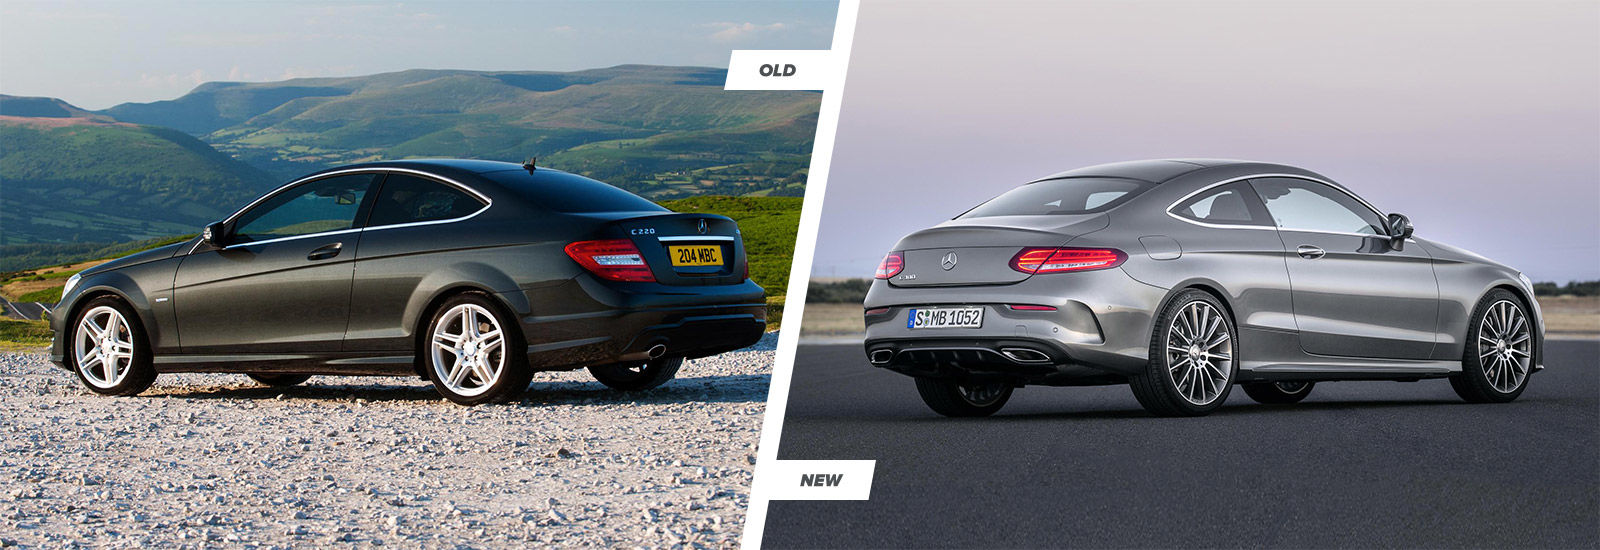 New Mercedes C Class Coupe Old Vs New Compared Carwow